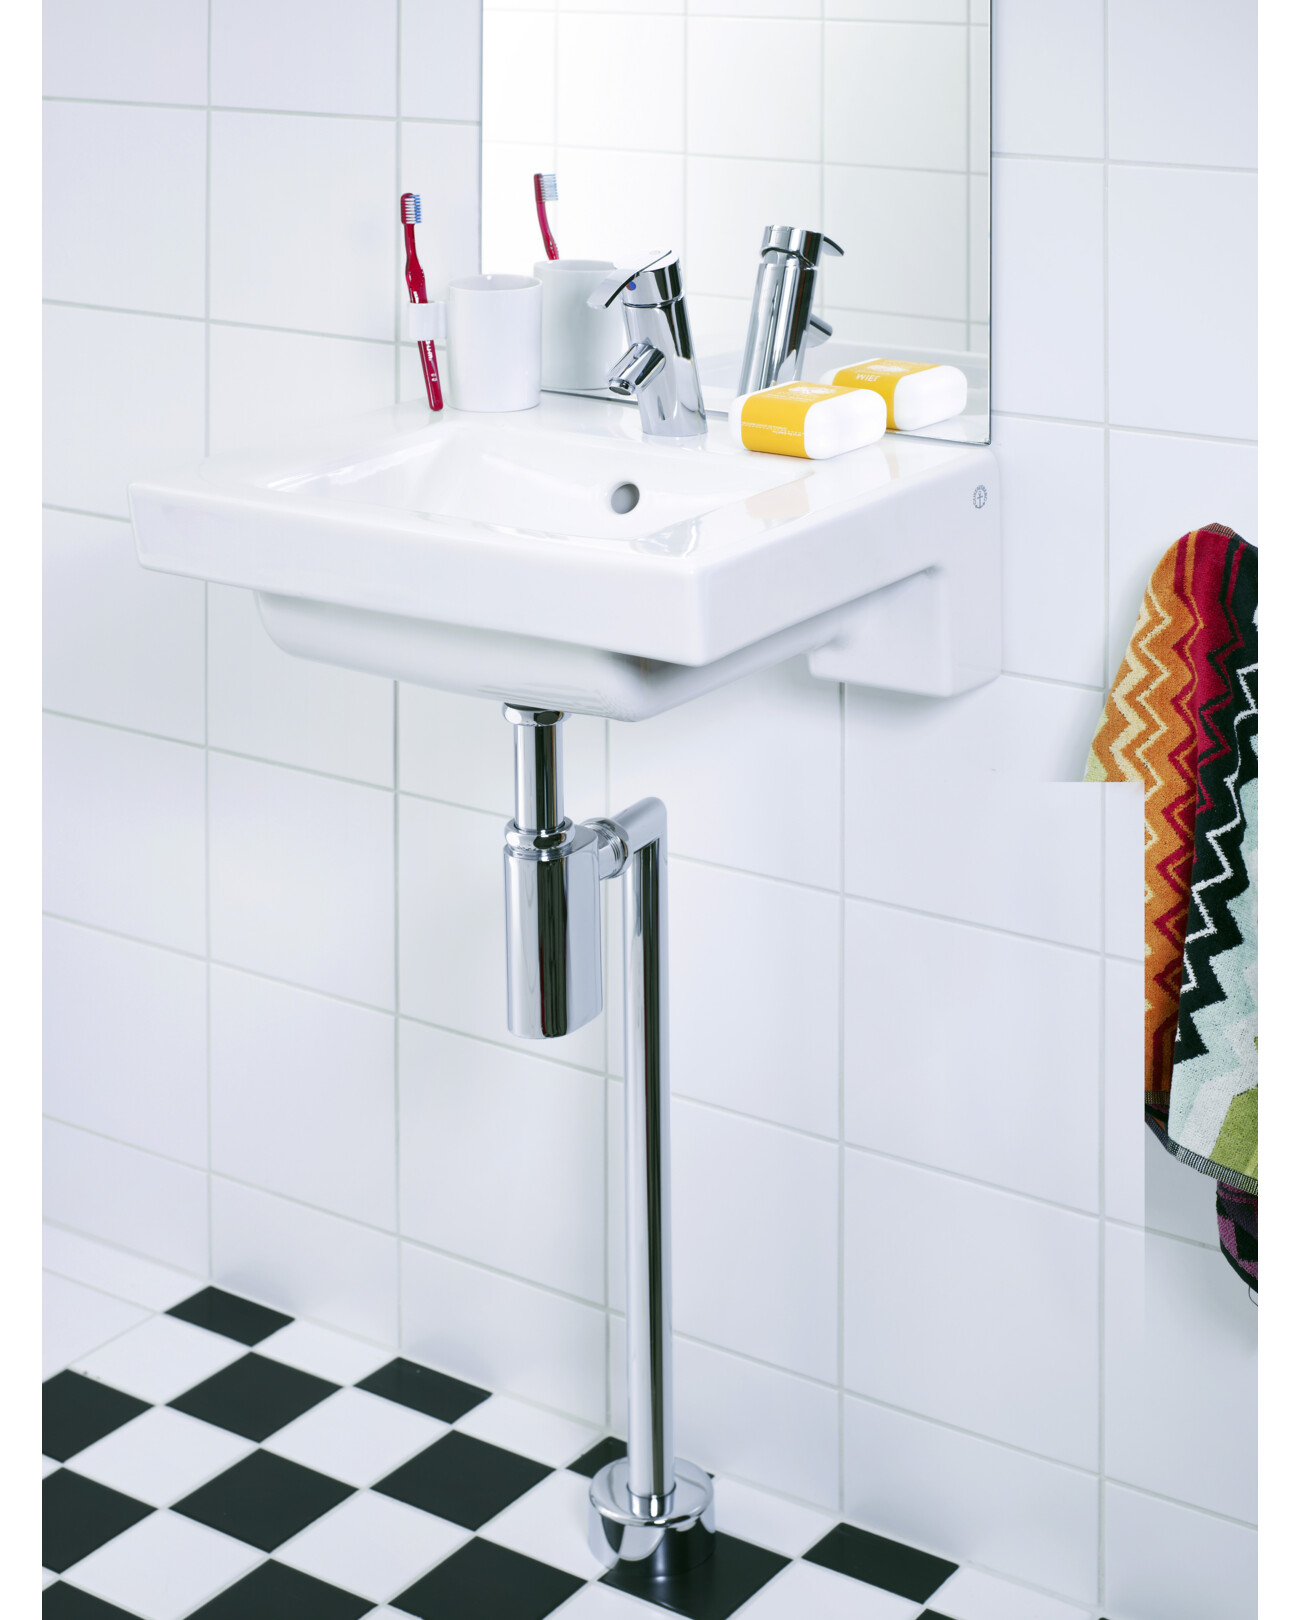 Bathroom sinks YK5 4550.